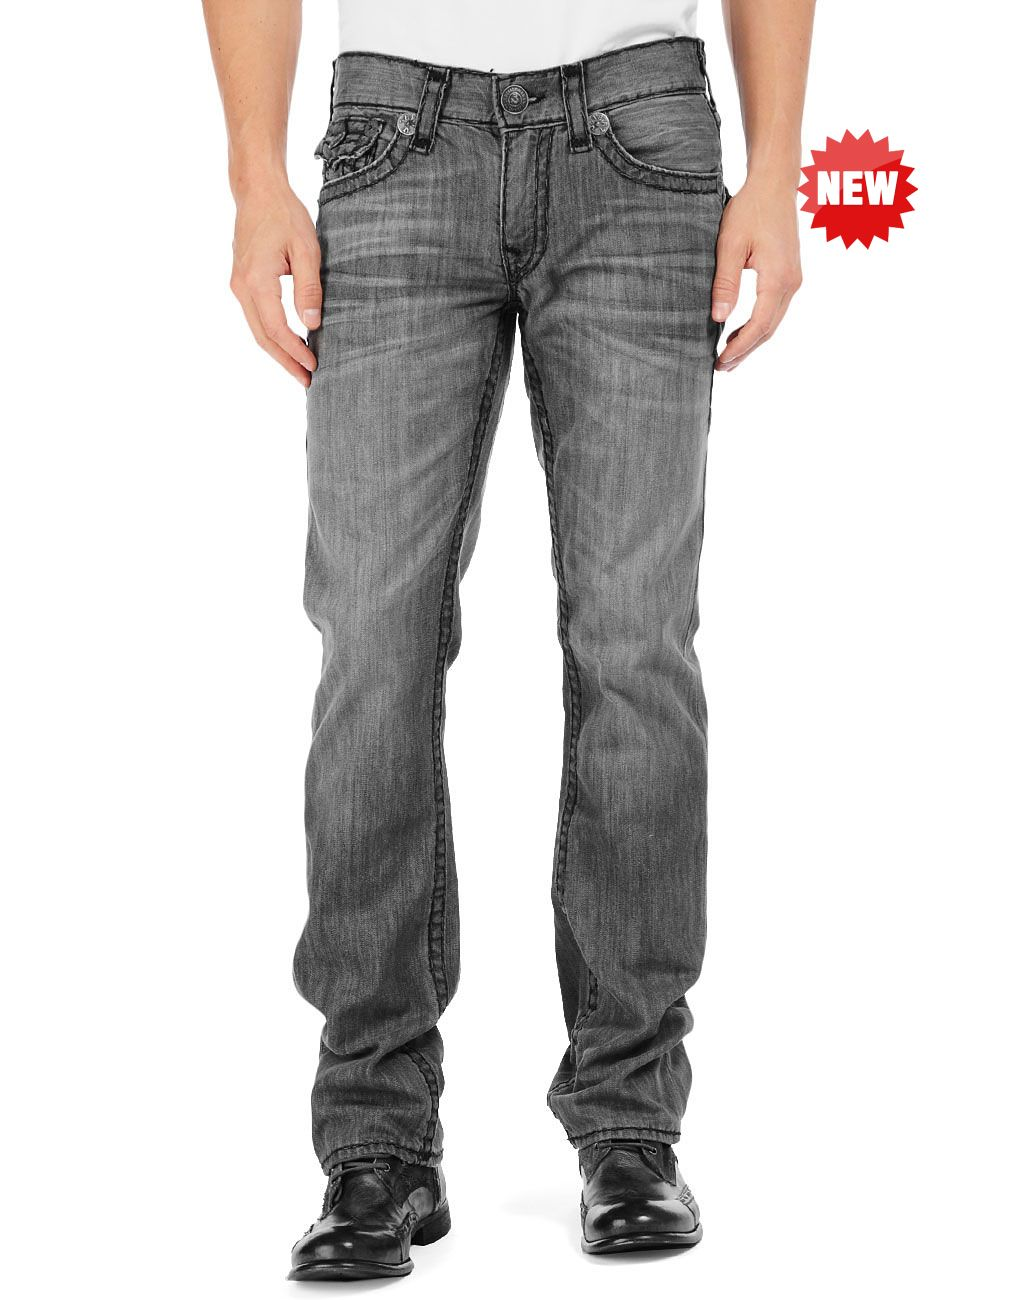 Black Market Jeans, from Buckle